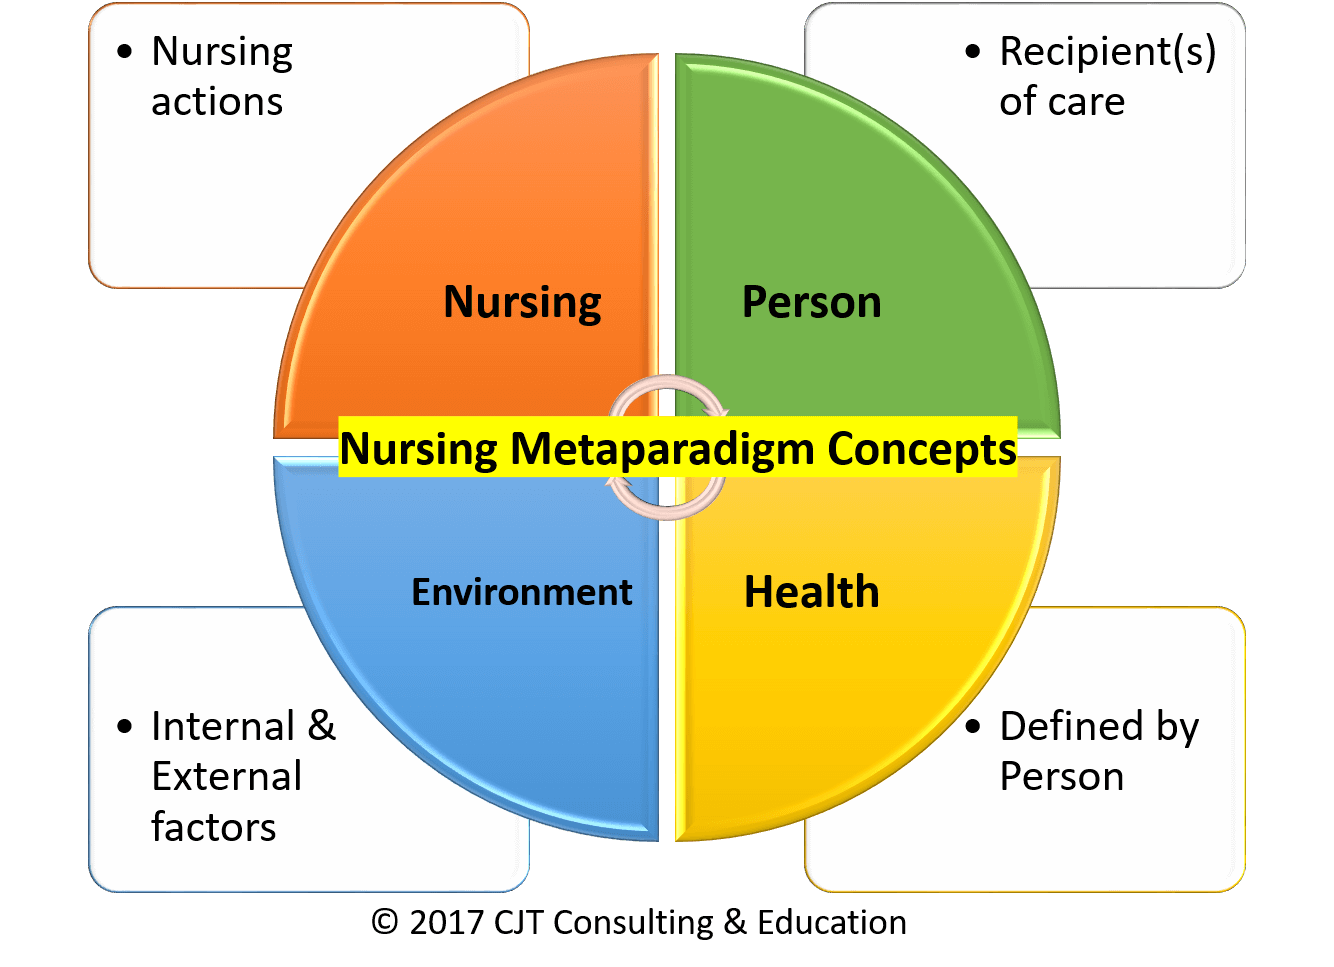 4 concepts of nursing metaparadigm